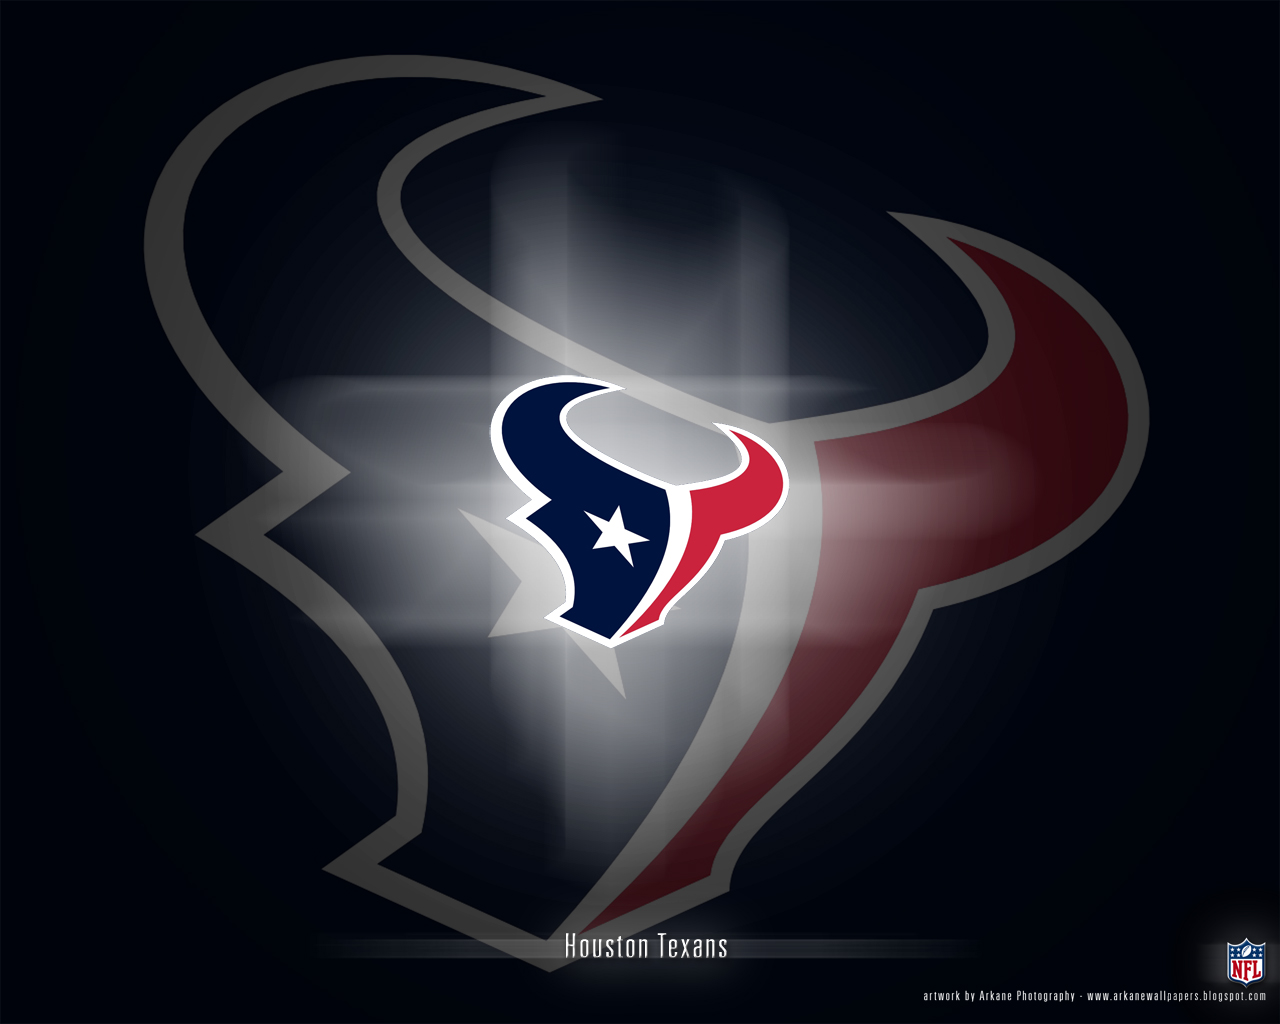 Arkane NFL Wallpapers Houston Texans   Vol 1 1280x1024